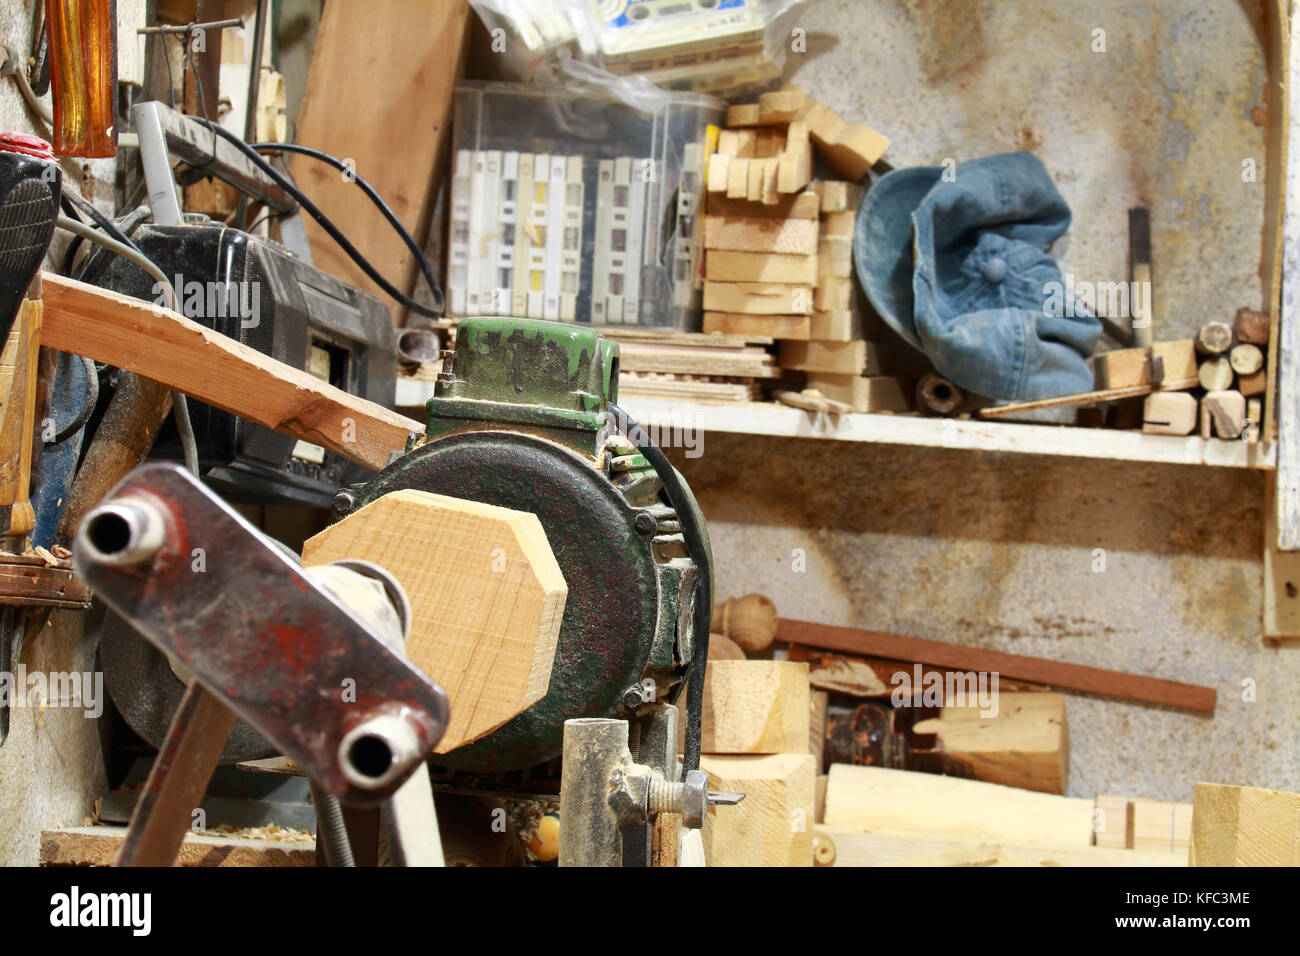 Woodworker lathe - Stock Image